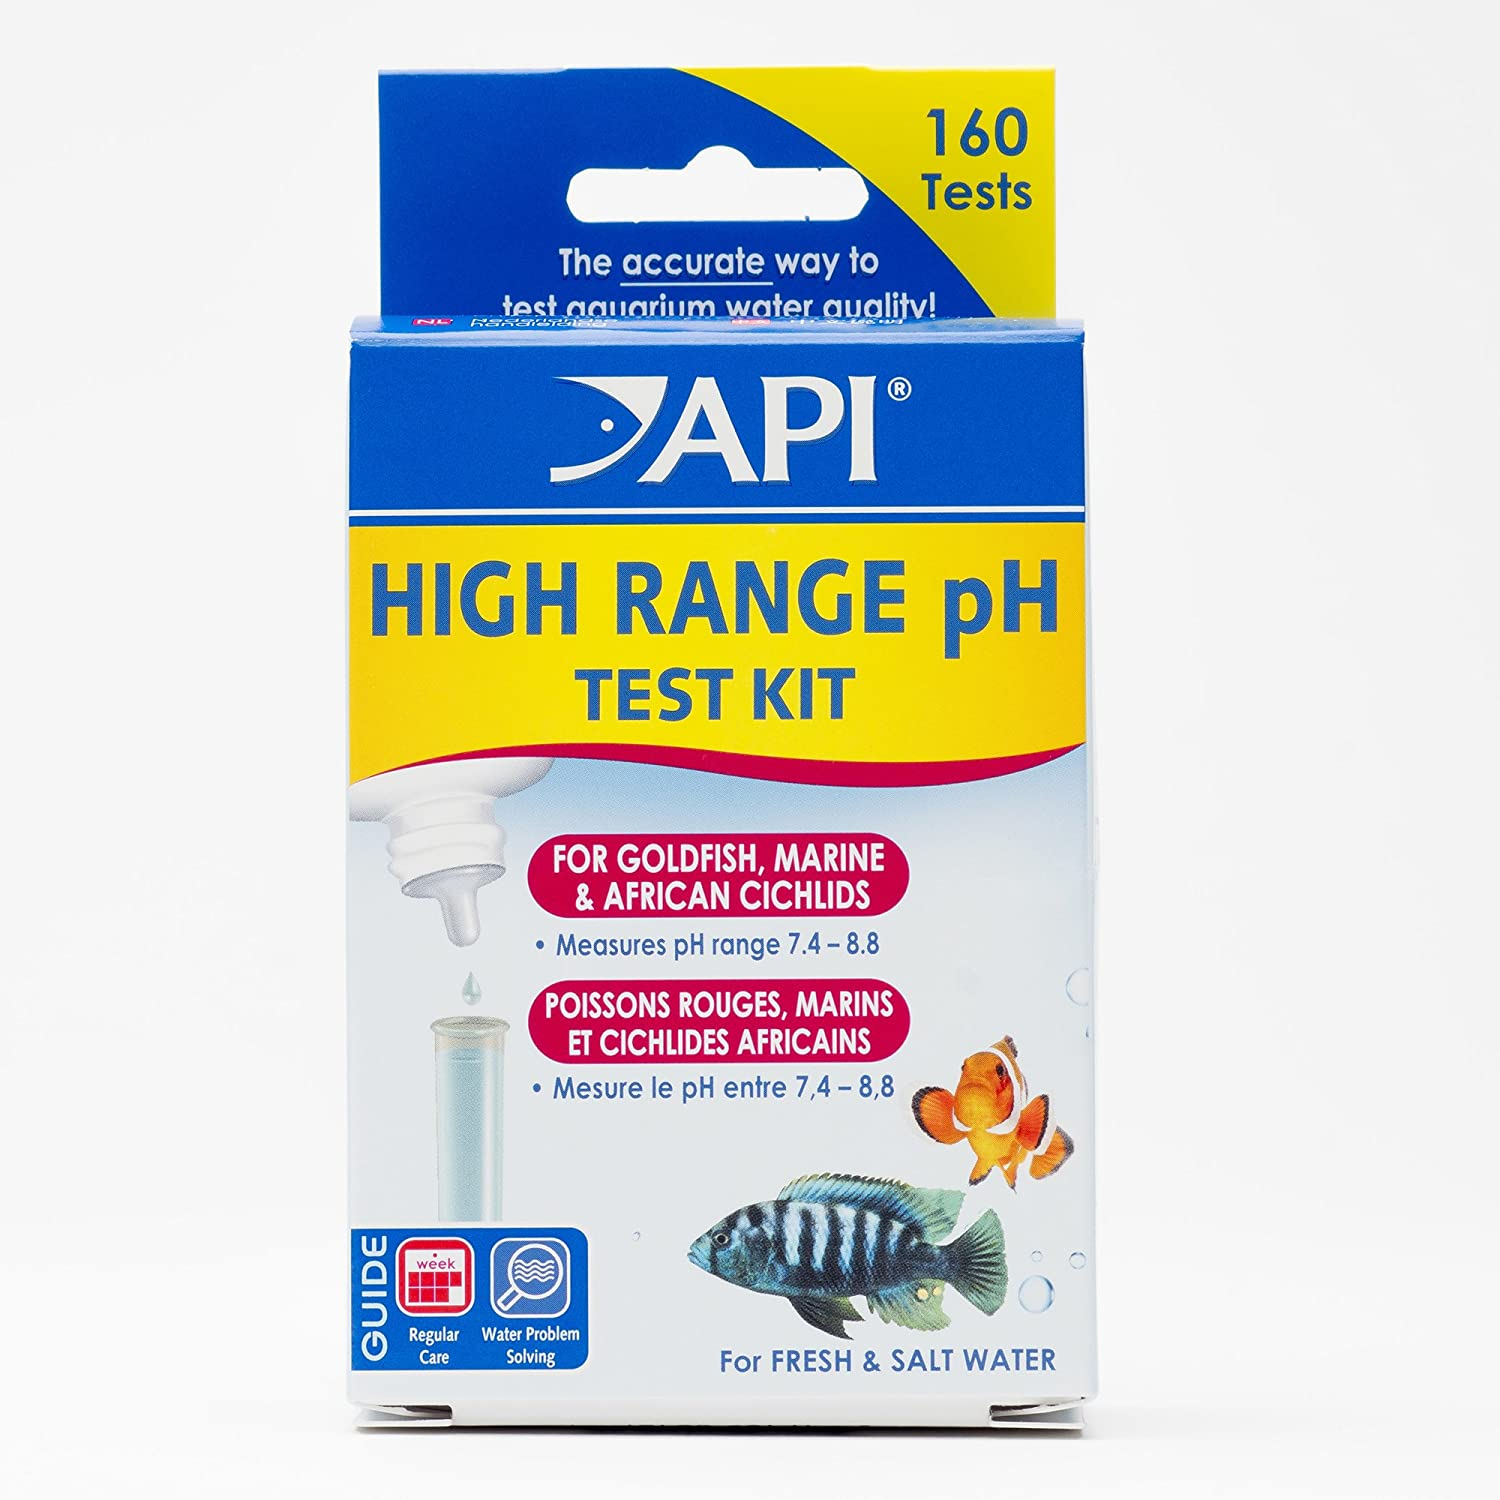 API TEST KIT, Different styles available, Monitors water quality and helps prevent invisible problems that can be harmful to fish, Fast, easy and accurate, Use weekly and when problems appear